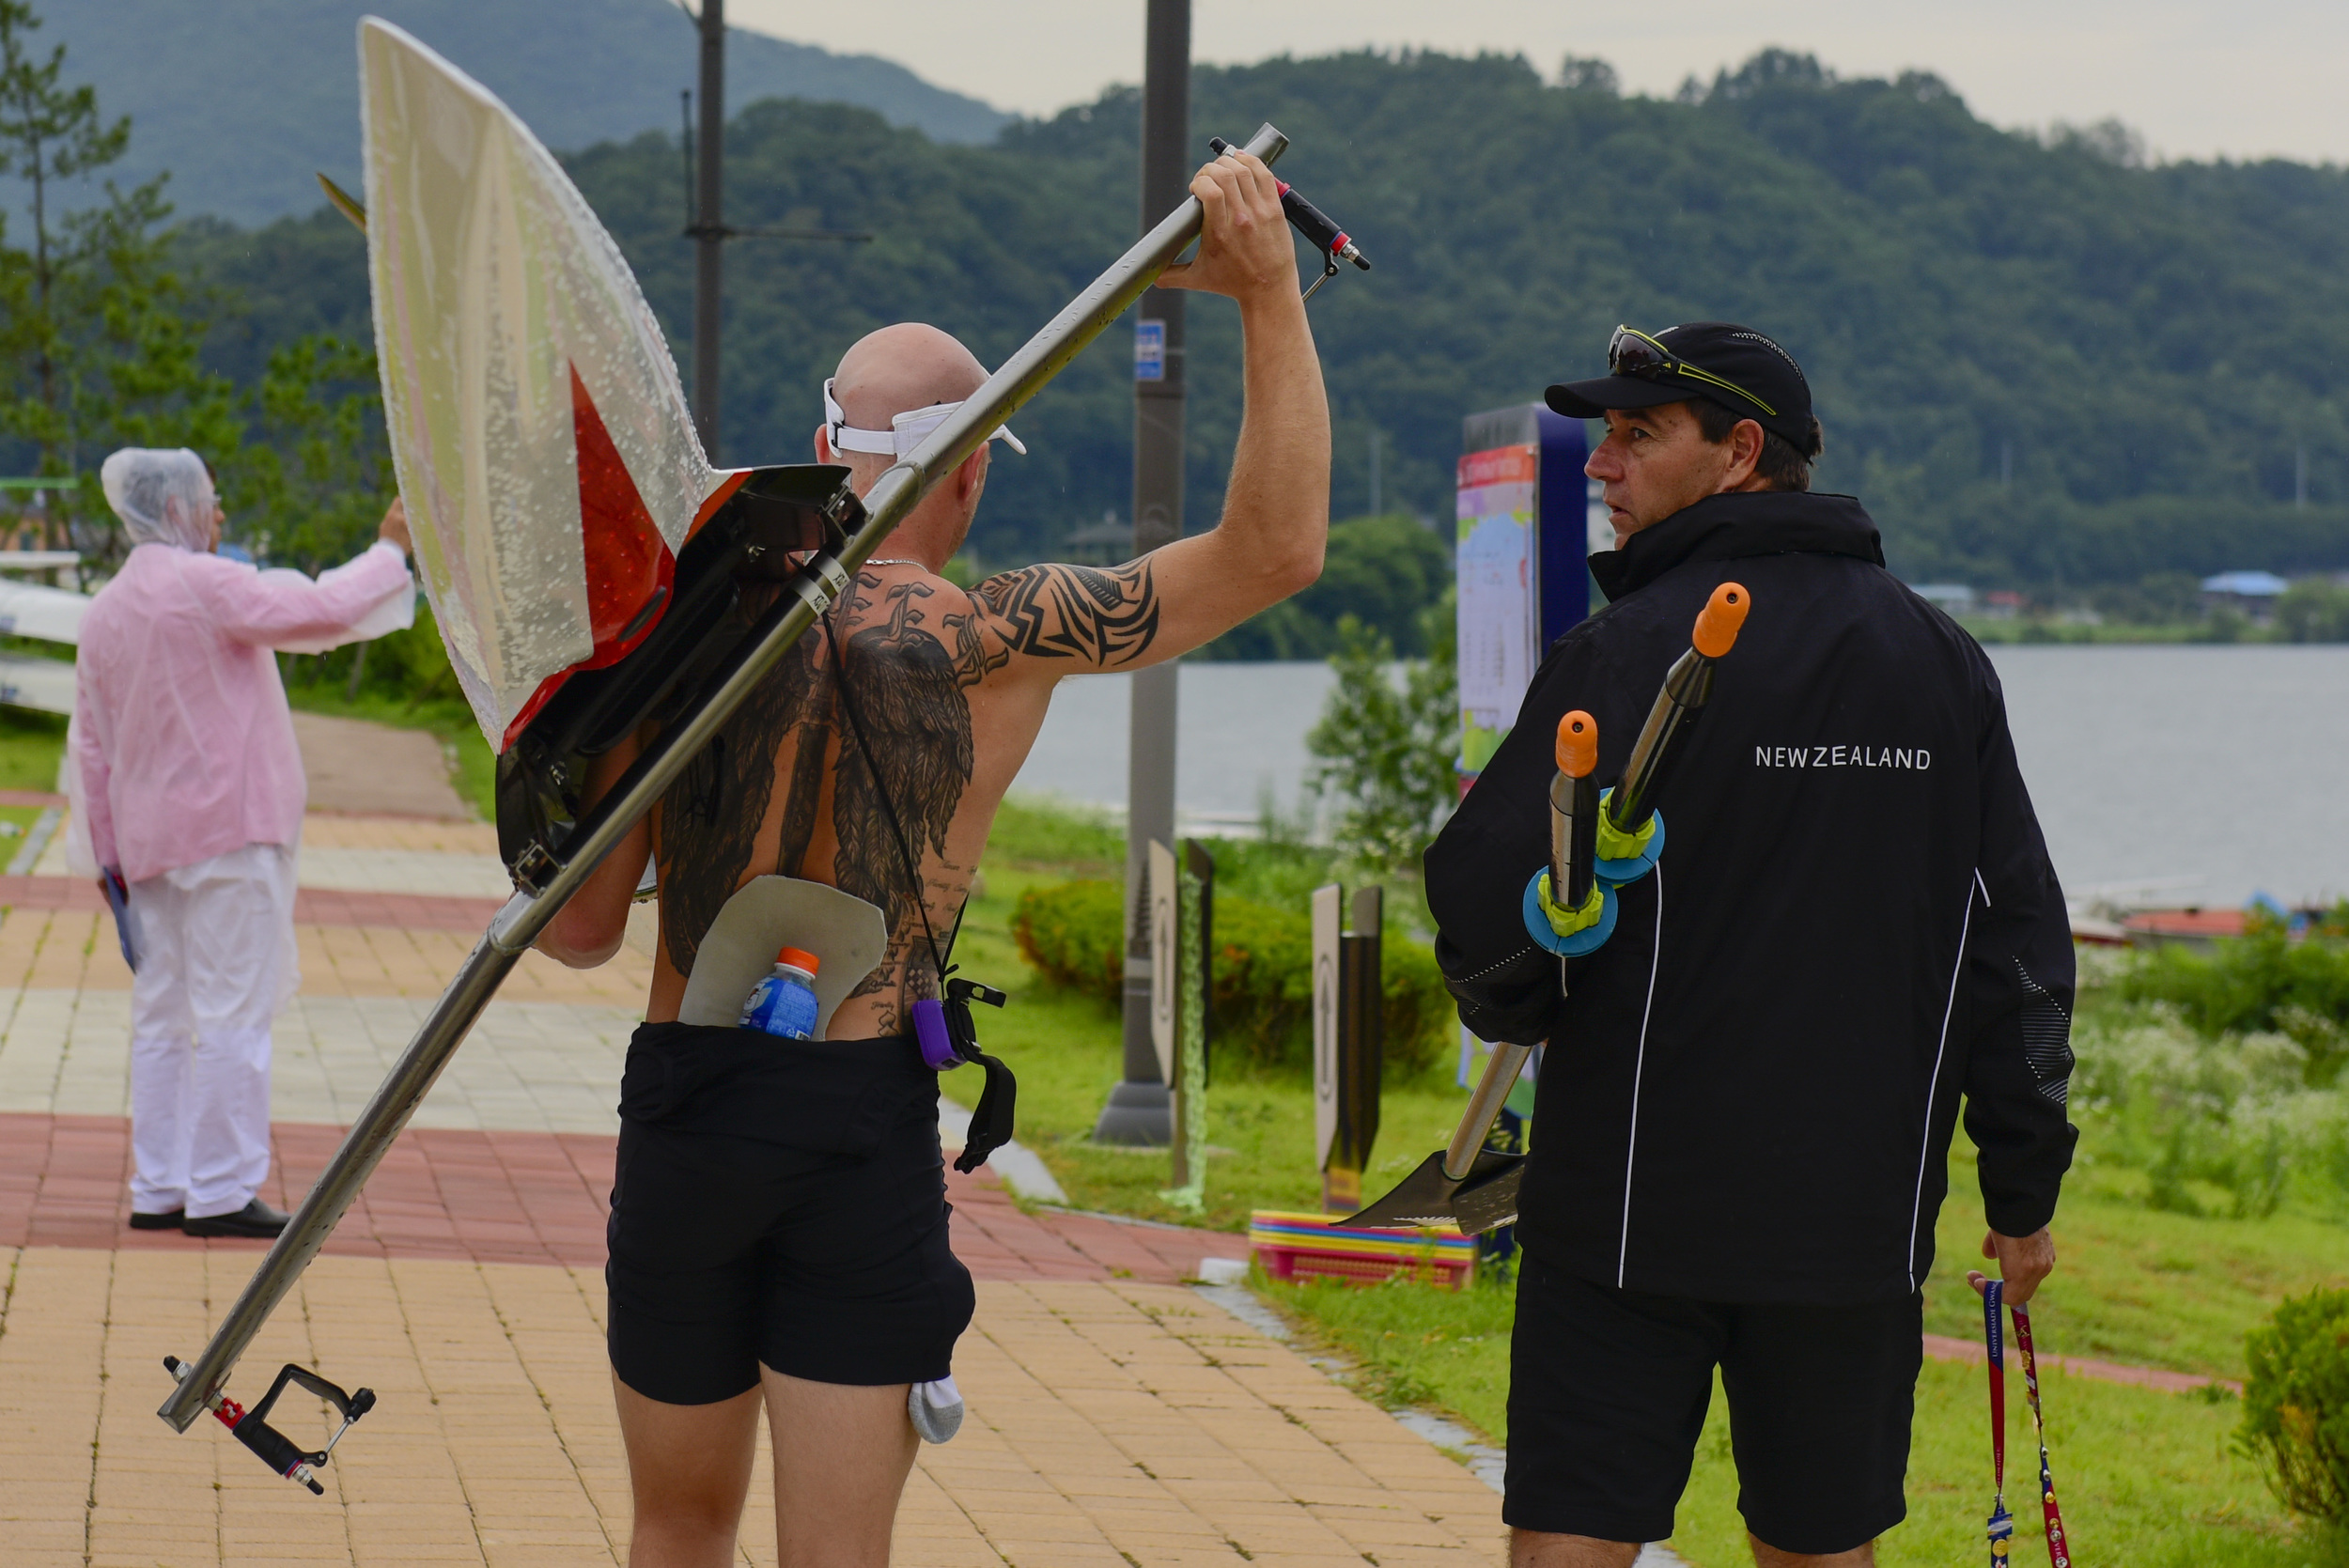 Toby Cunliffe-Steel - 2015 World University Games - A-Final - Photo © Rowing Celebration (2).jpg